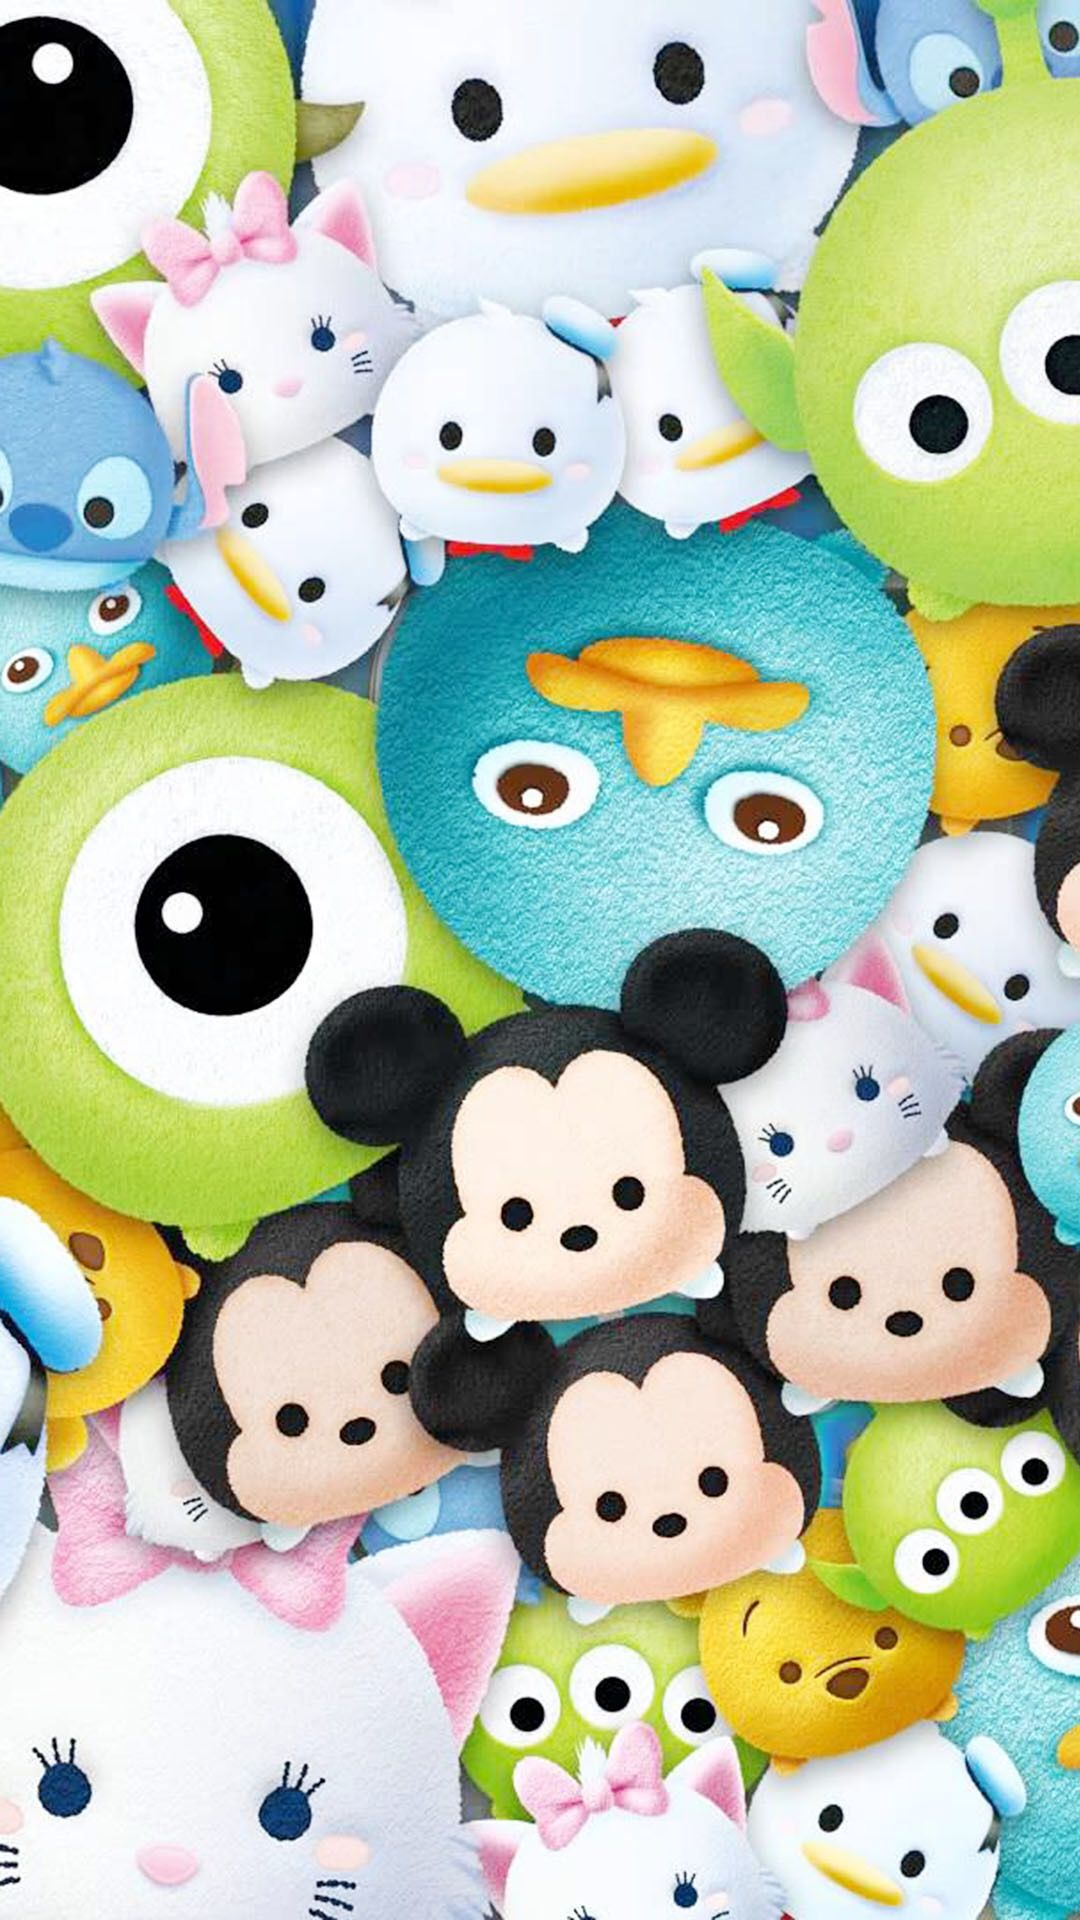 Pin by diana huet on wallpapers (With images) Tsum tsum